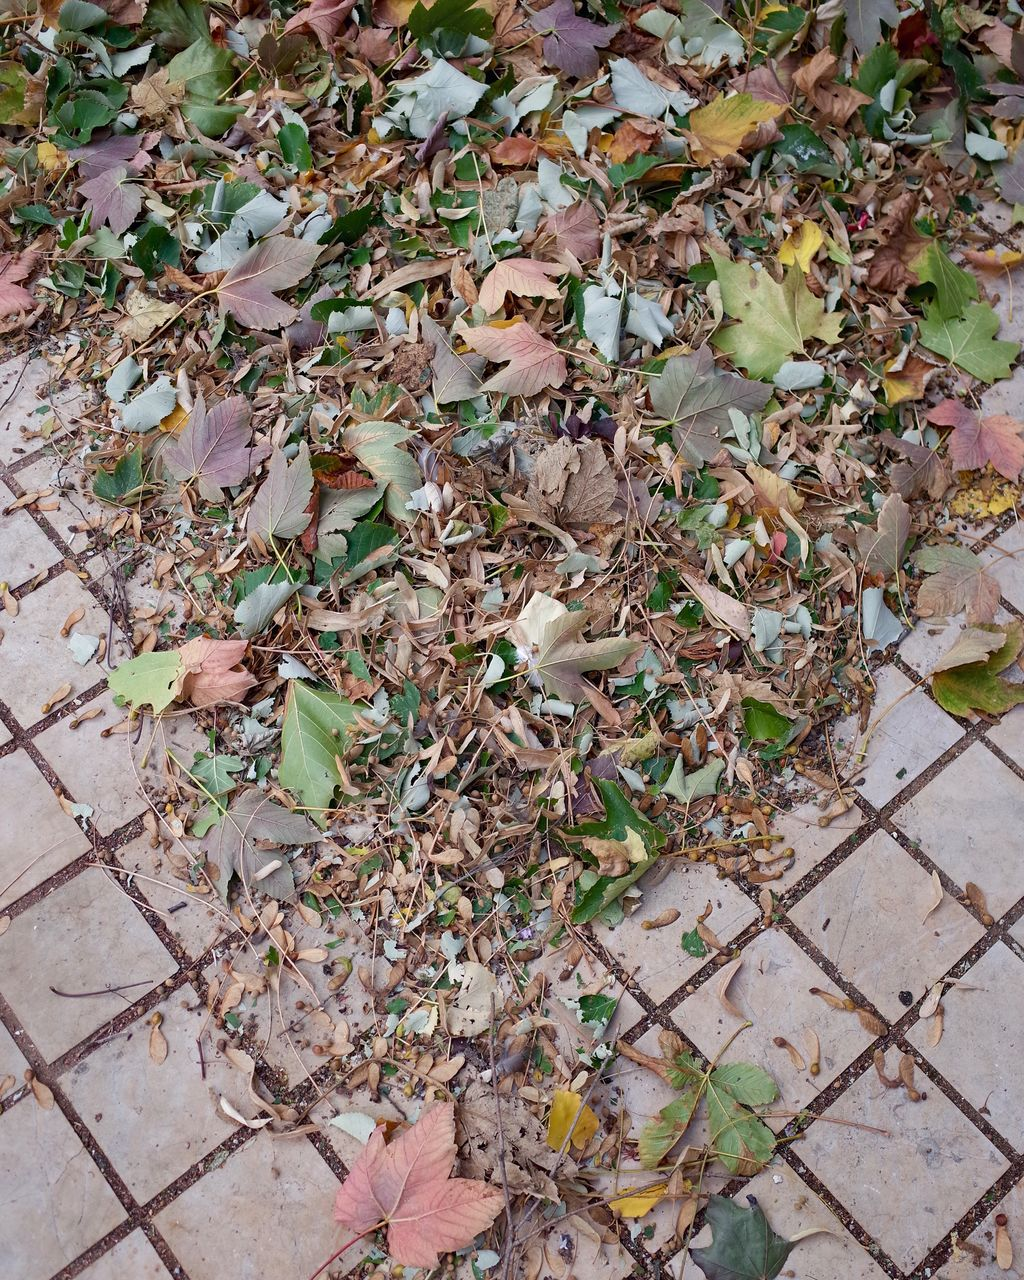 leaf, autumn, change, leaves, dry, nature, high angle view, fallen, day, outdoors, abundance, no people, plant, fragility, beauty in nature, maple, close-up